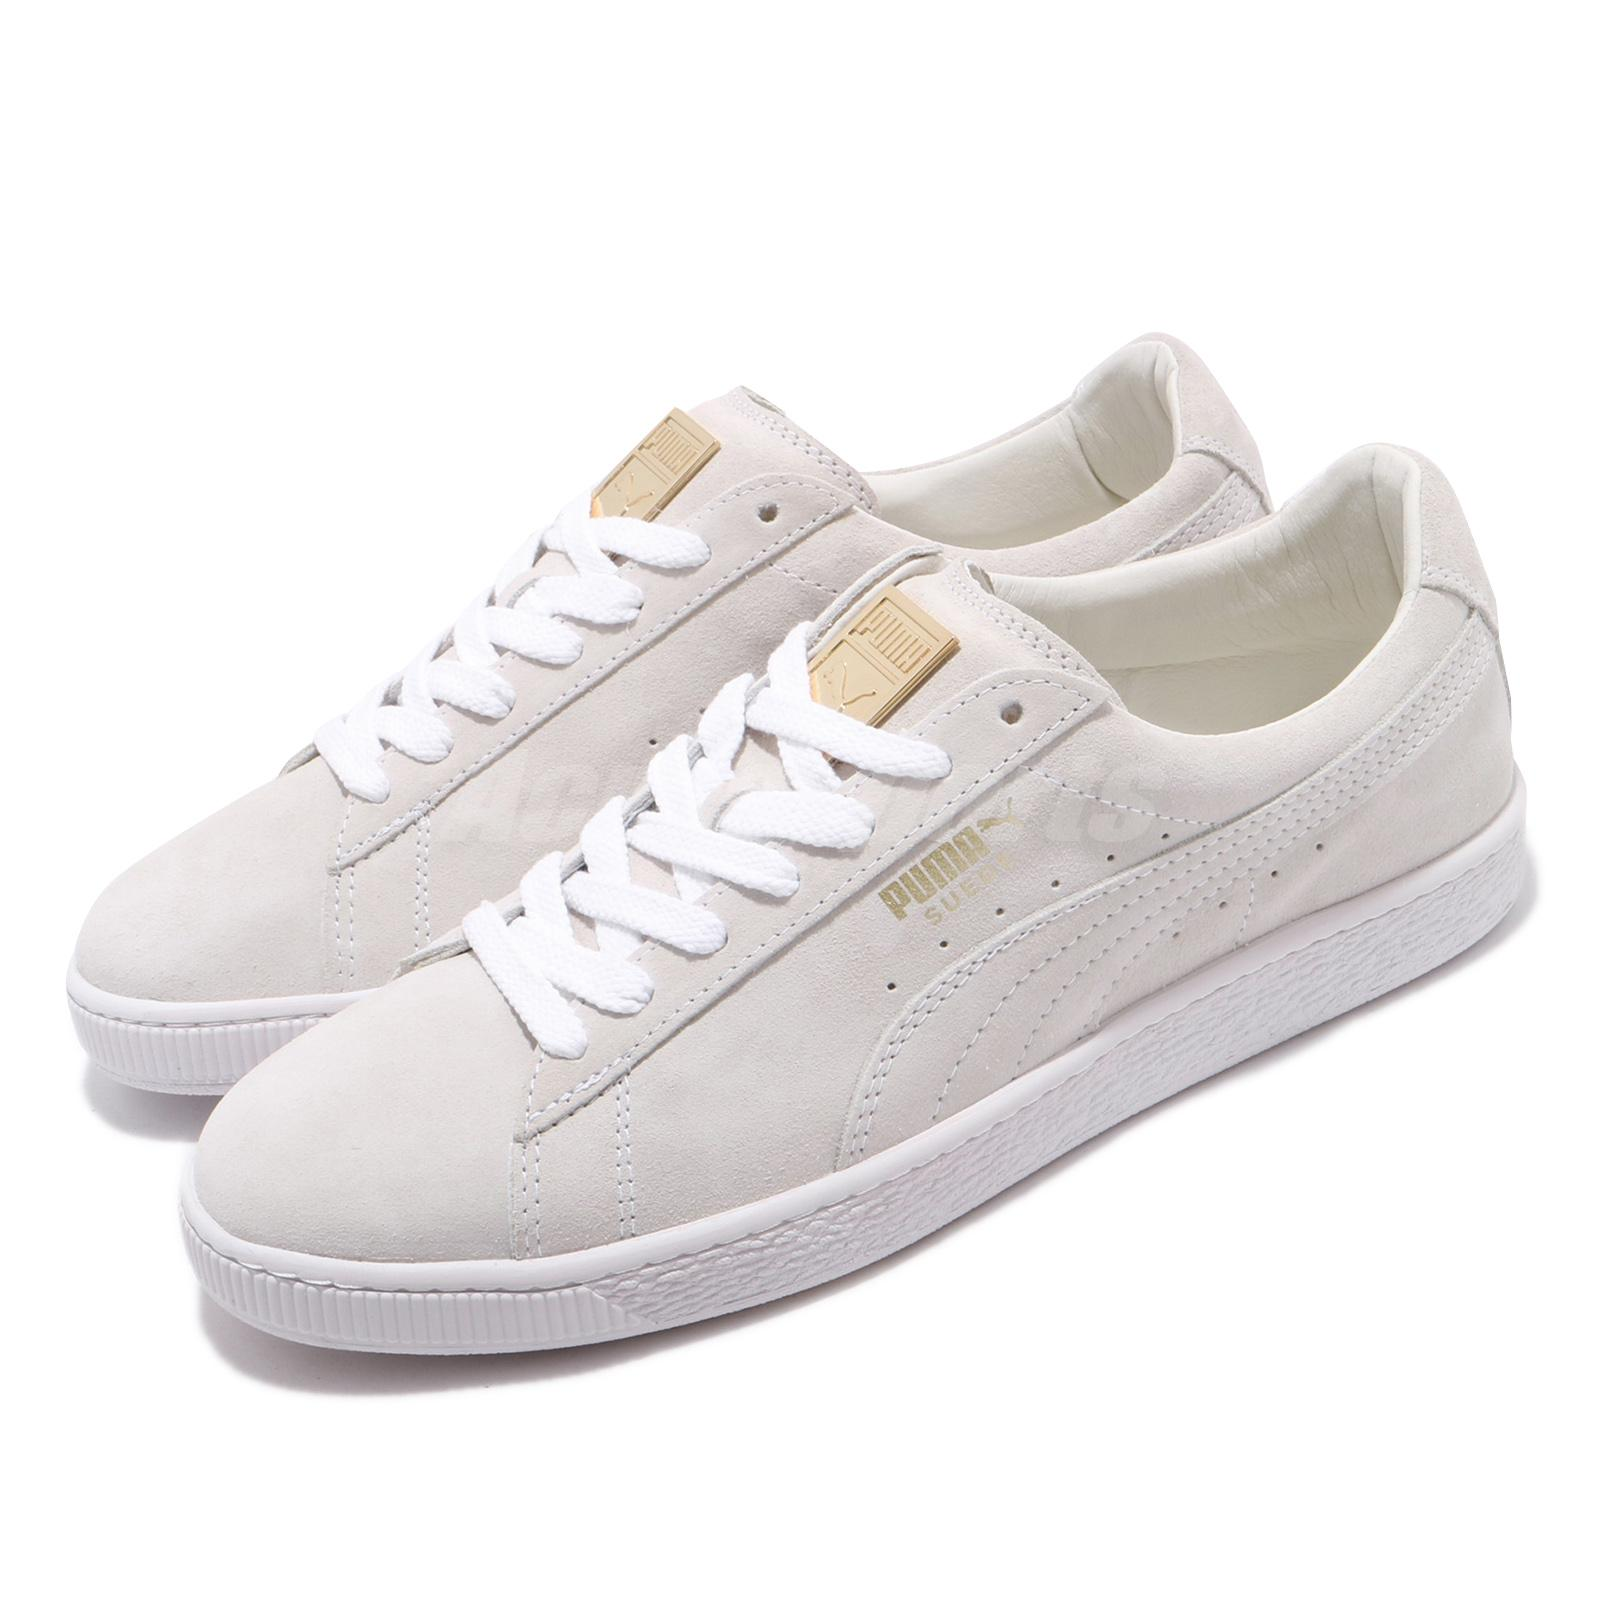 super popular 4f064 4c21f Details about Puma Suede Classic Metal Badge White Ivory Gold Men Women  Unisex Shoes 370081-02